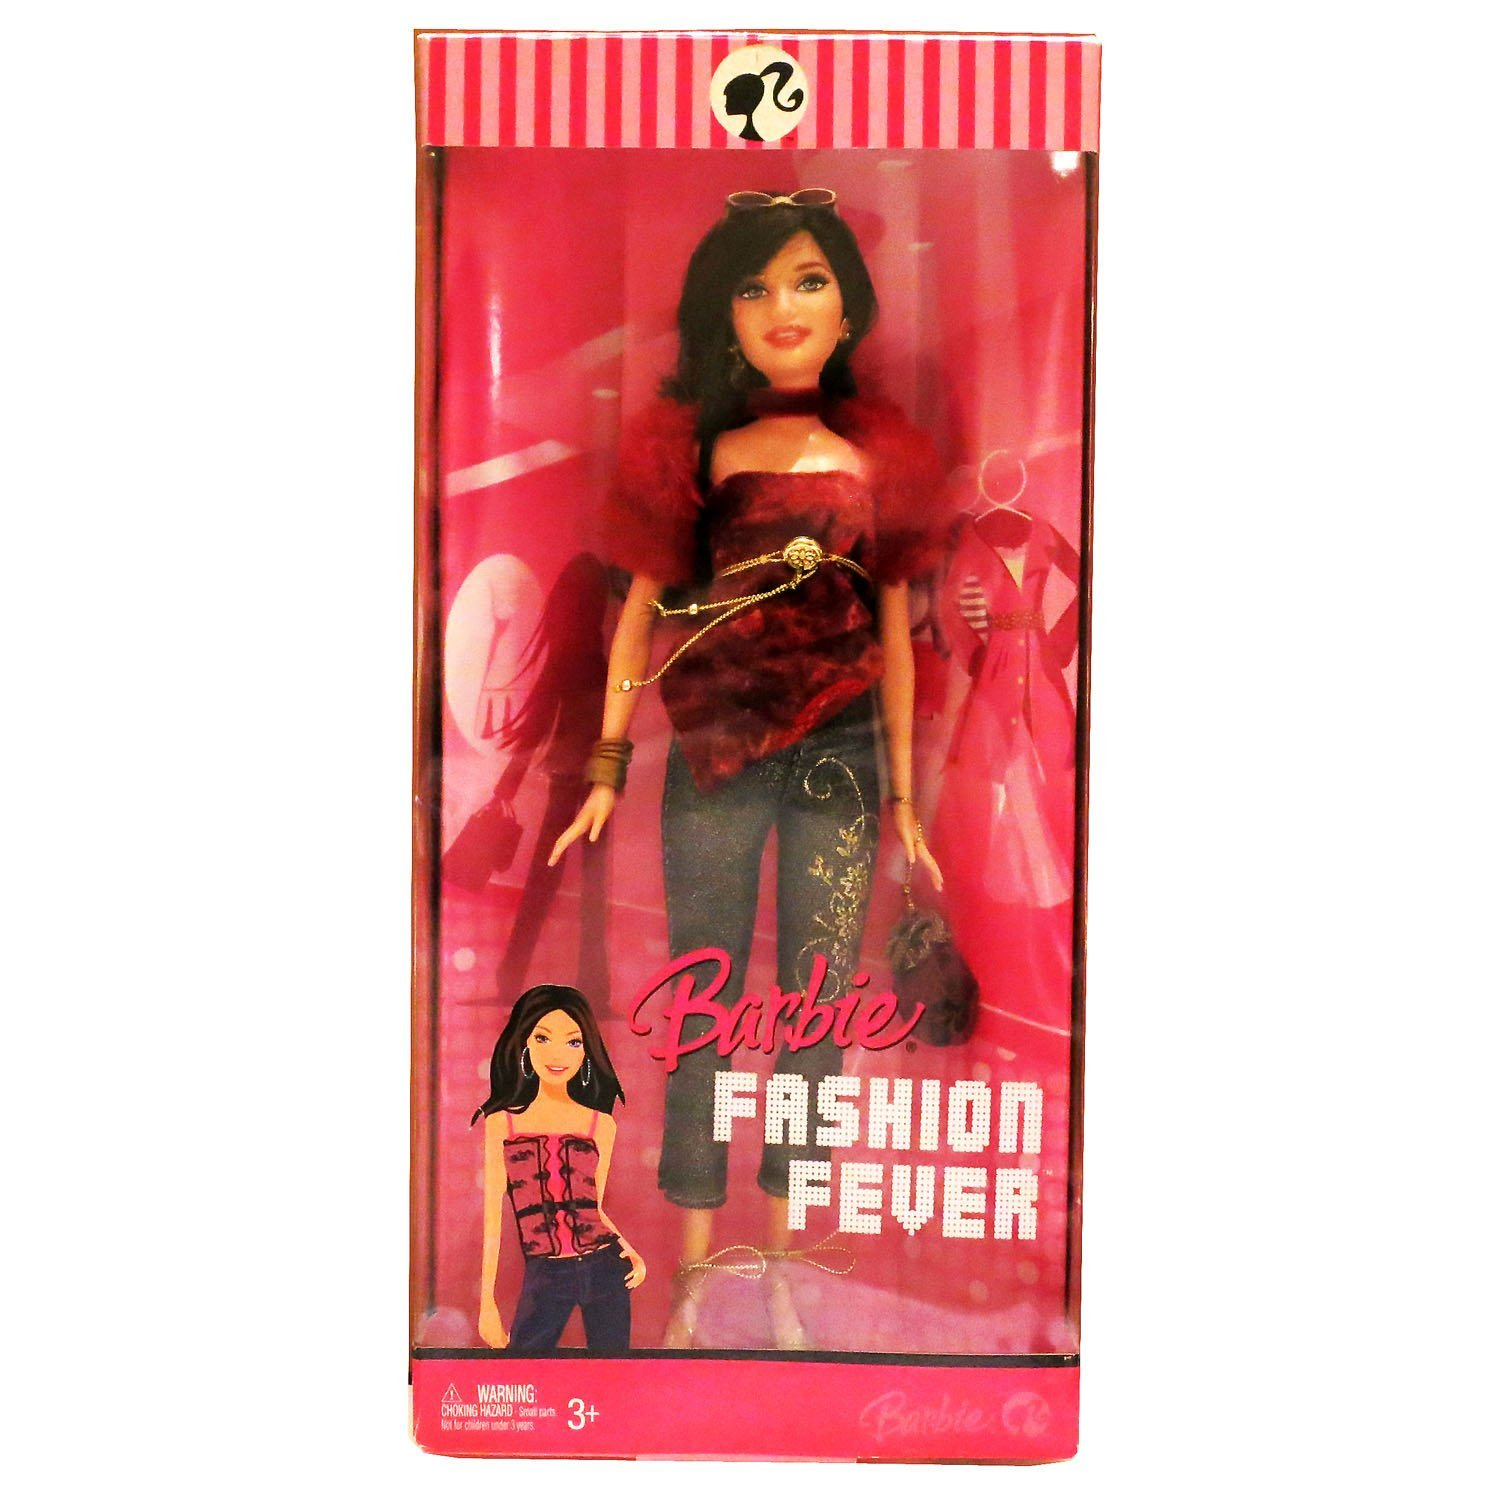 Mattel Year 2007 Barbie Fashion Fever Series 12 Inch Tall Doll Set - Glamorous, Trendy and Popular RAQUELLE (L3332) in Red Velvet Top with Faux Fur Sleeve Plus Bangles, Earrings, High Heel Shoes, Sunglasses and Purse